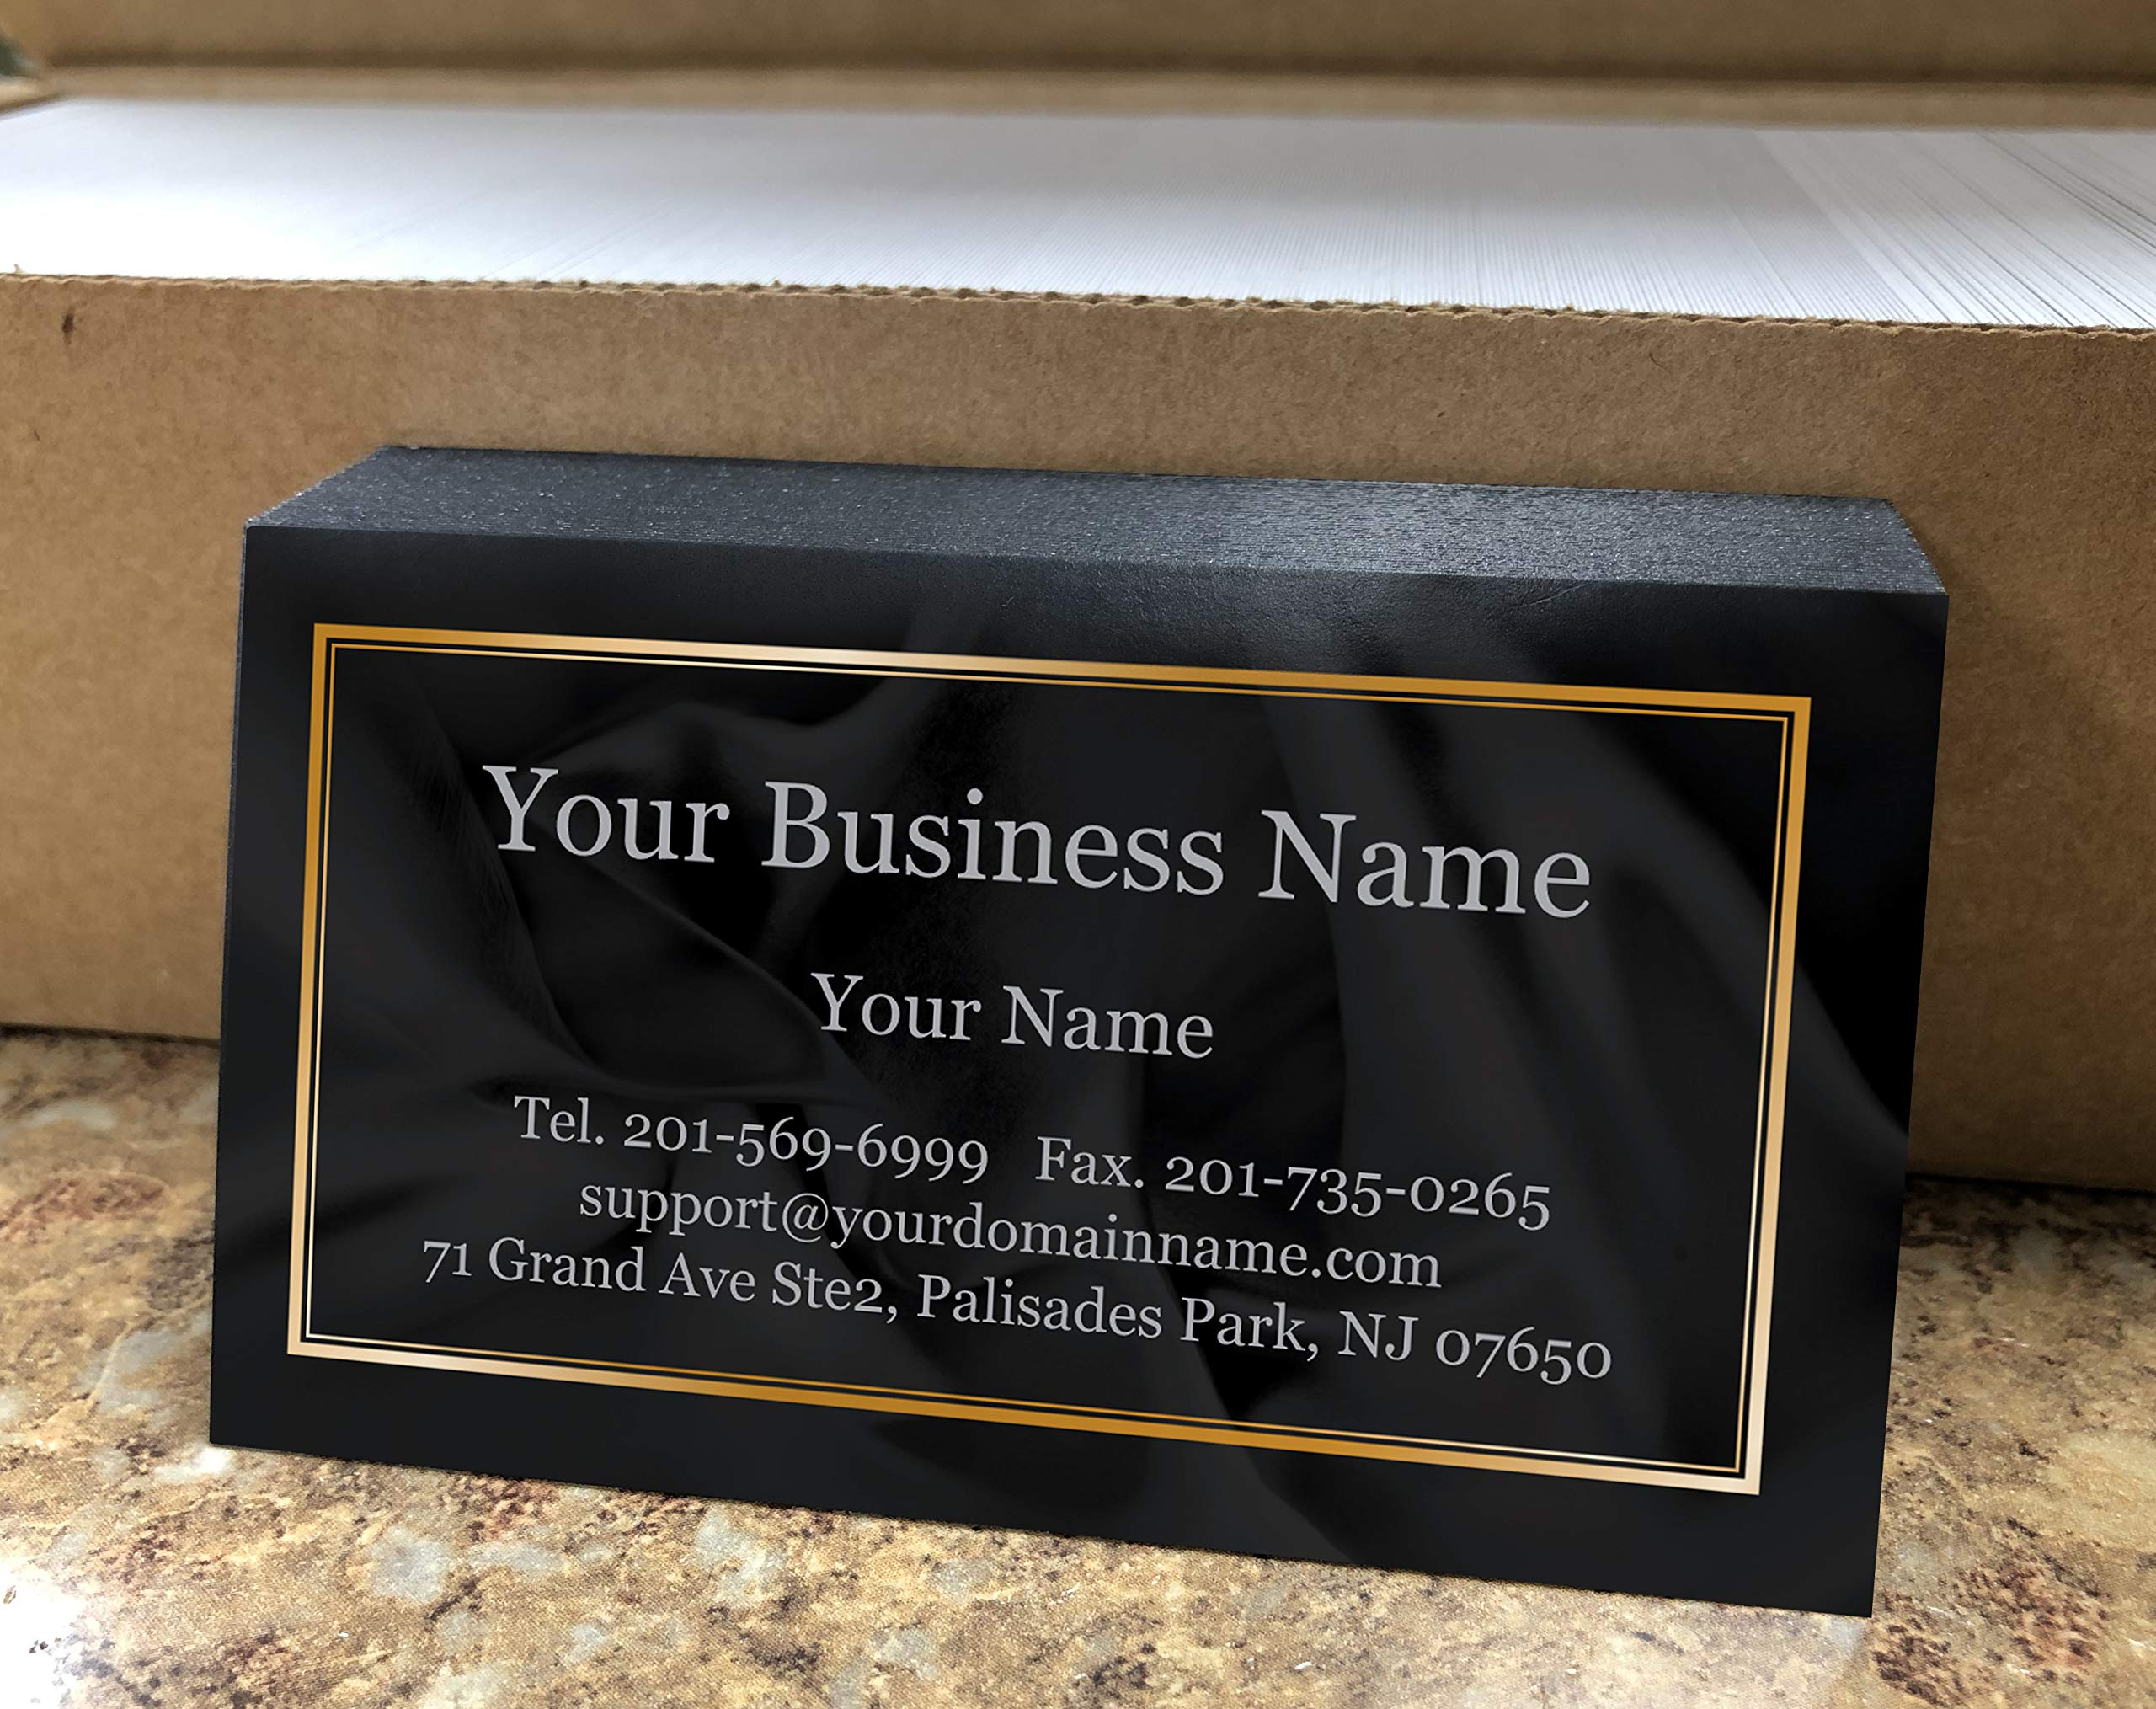 Custom Premium Business Cards 500 pcs- Black Ocean Wave-16pt cover (129 lbs. 350gsm-Thick paper),Offset Printing, Made in The USA